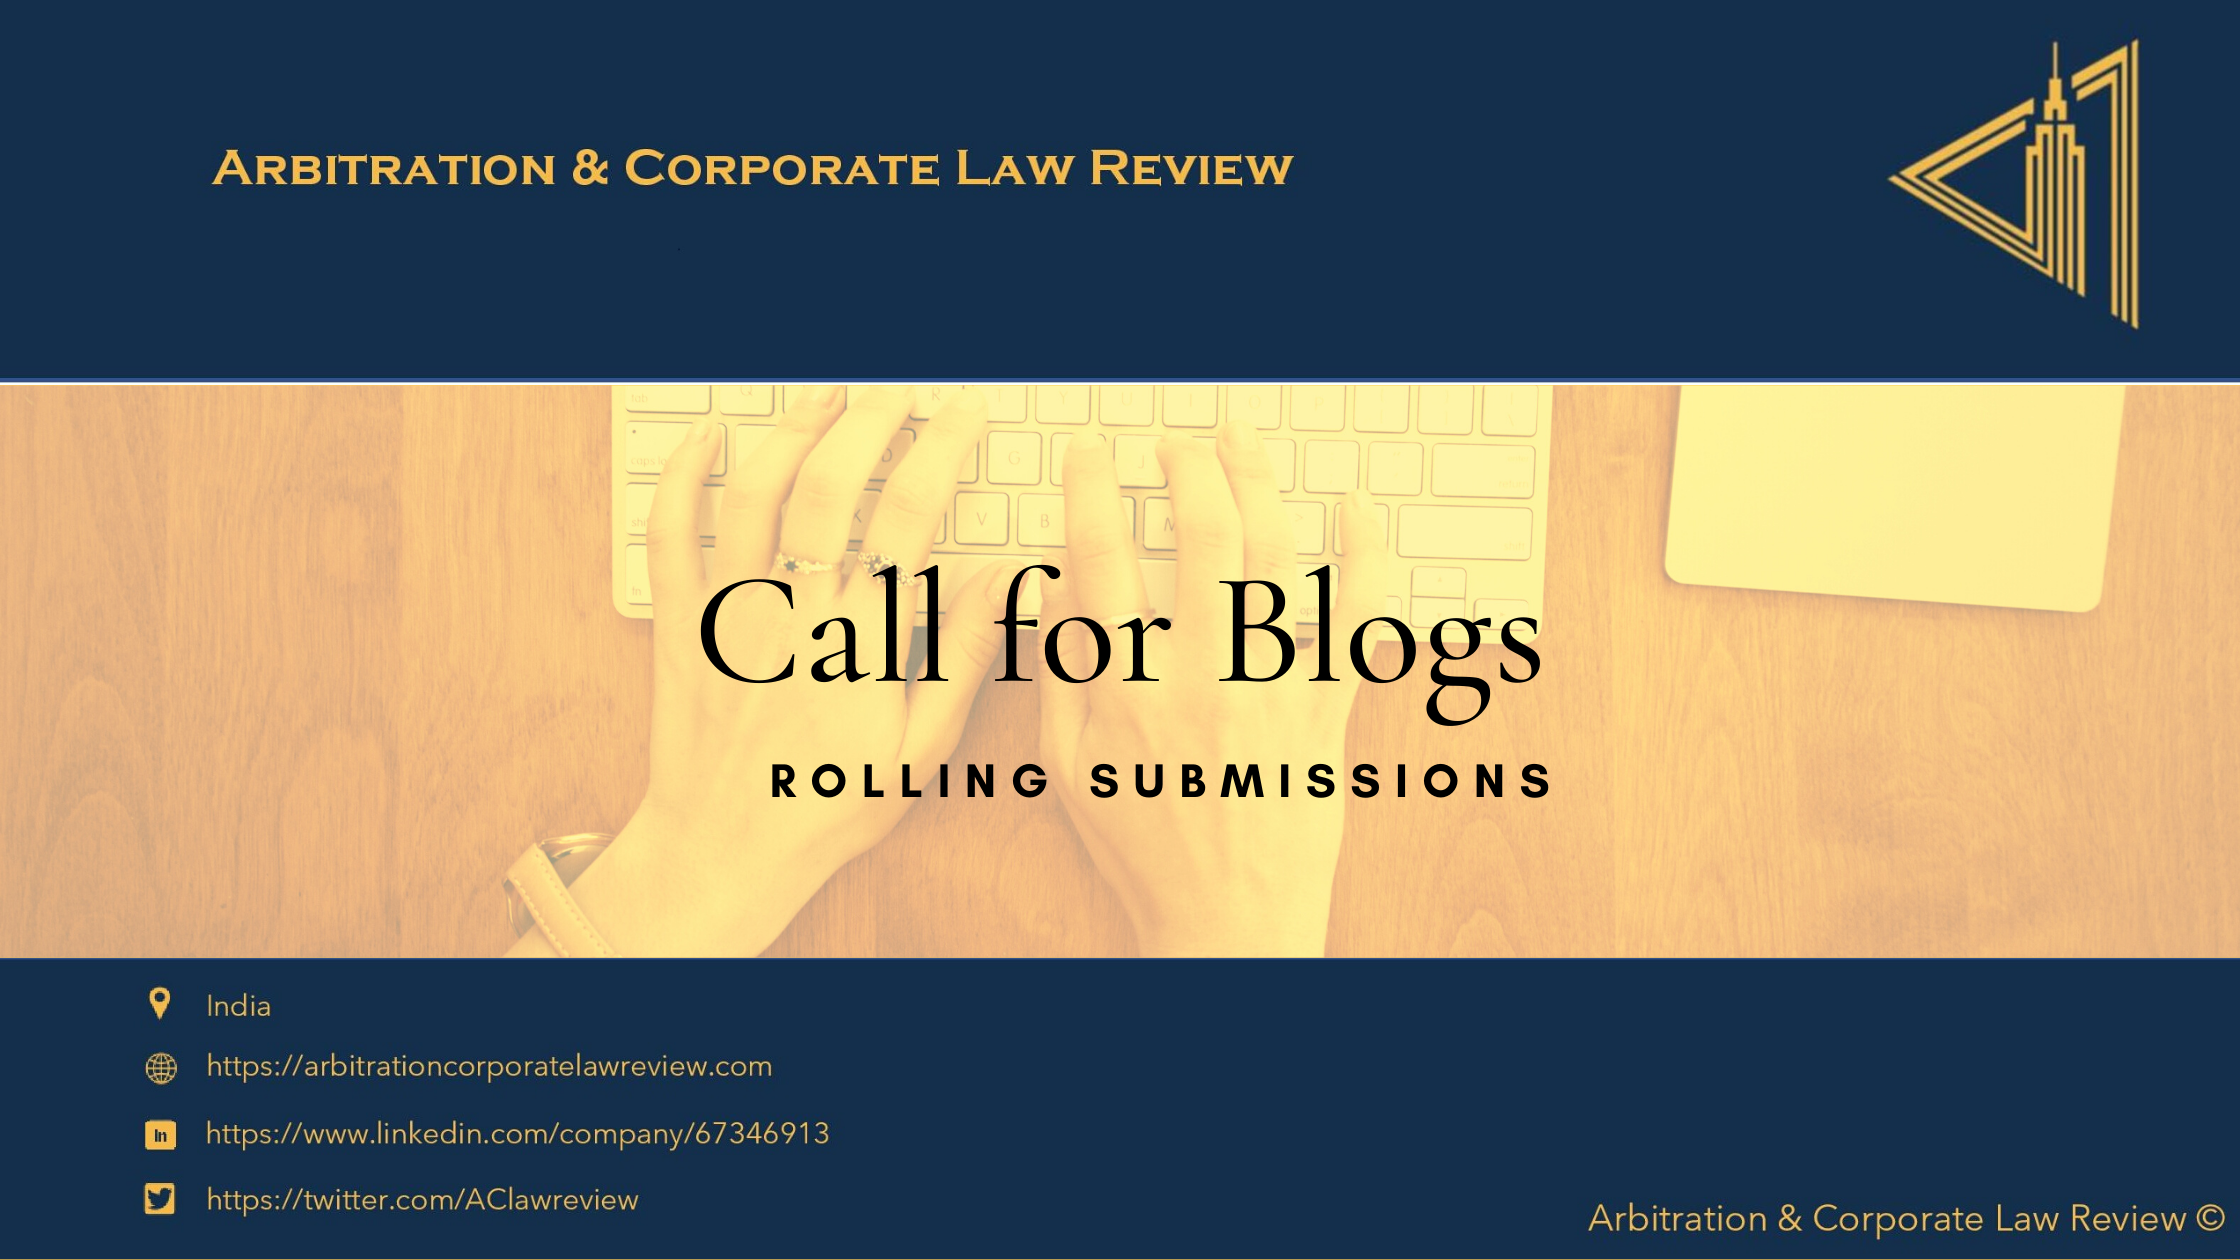 Arbitration & Corporate Law Review